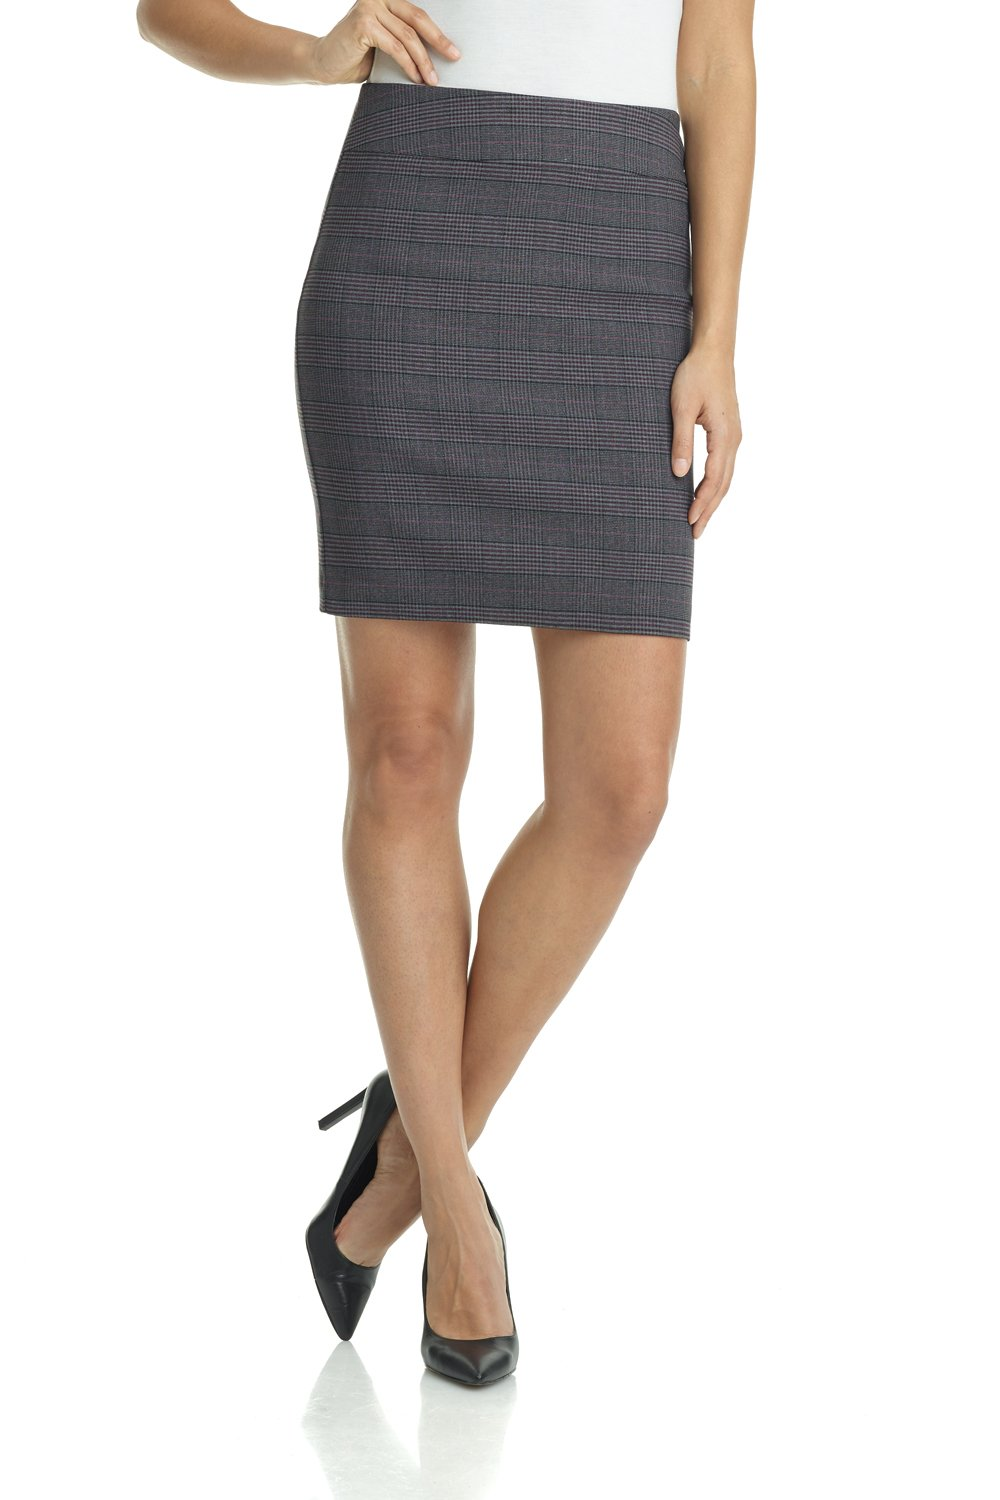 Rekucci Women's Ease in to Comfort Stretchable Above The Knee Pencil Skirt 19'' (Small,Charcoal/Wine)